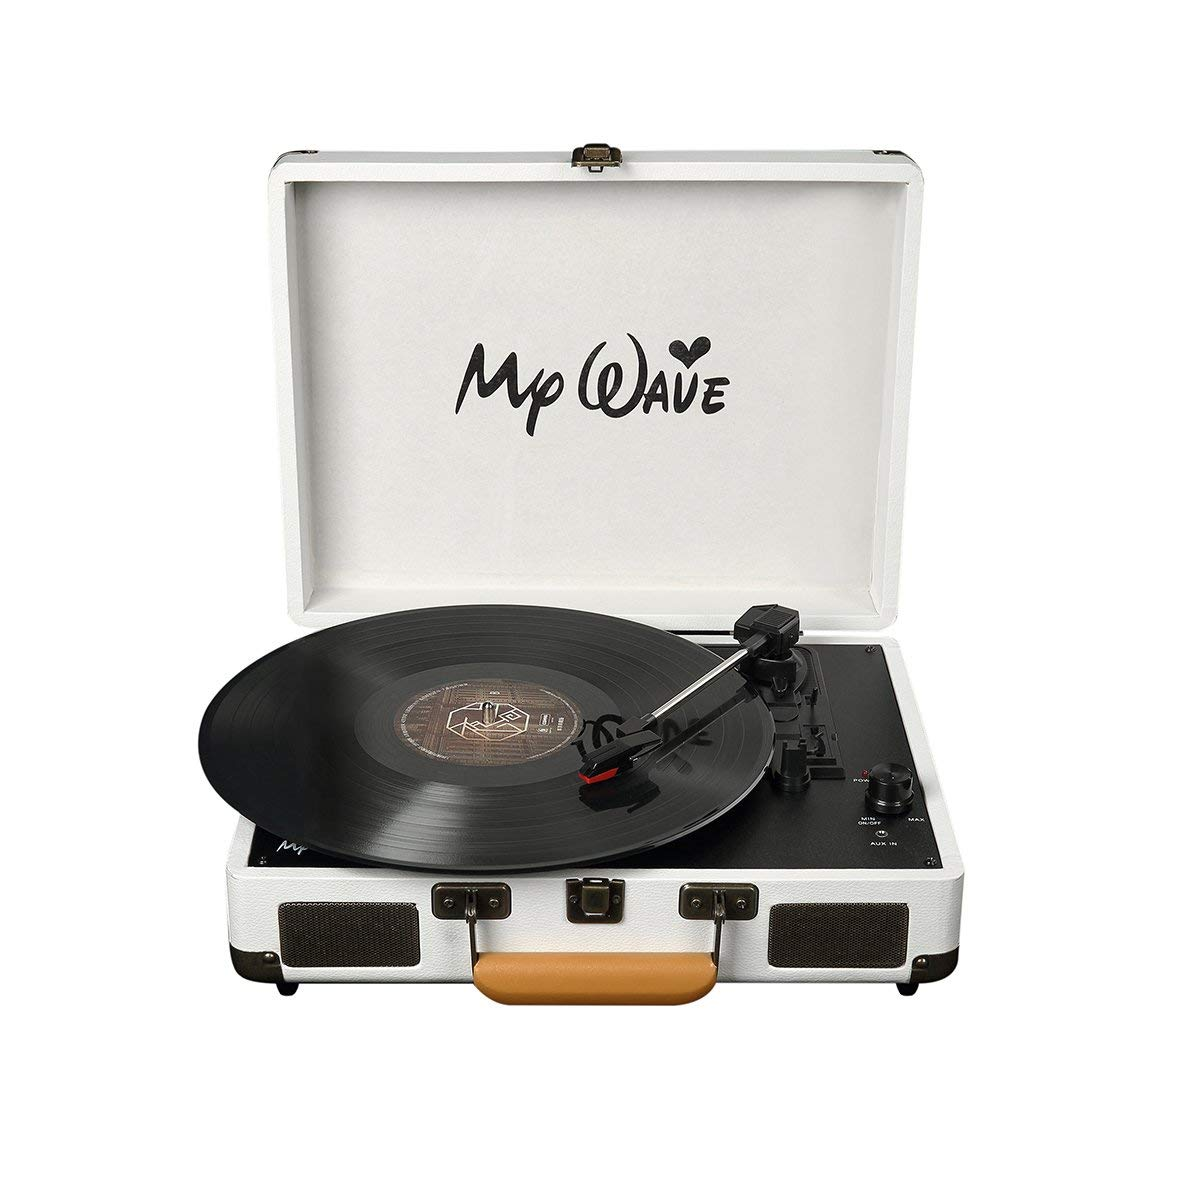 Cheap Speed Vinyl Find Deals On Line At Alibabacom Game Circuit 3m Sports 1971 Racing Vintage Get Quotations Mywave Portable Wireless Turntable With Built In Stereo Speakers 3 Speedvinyl